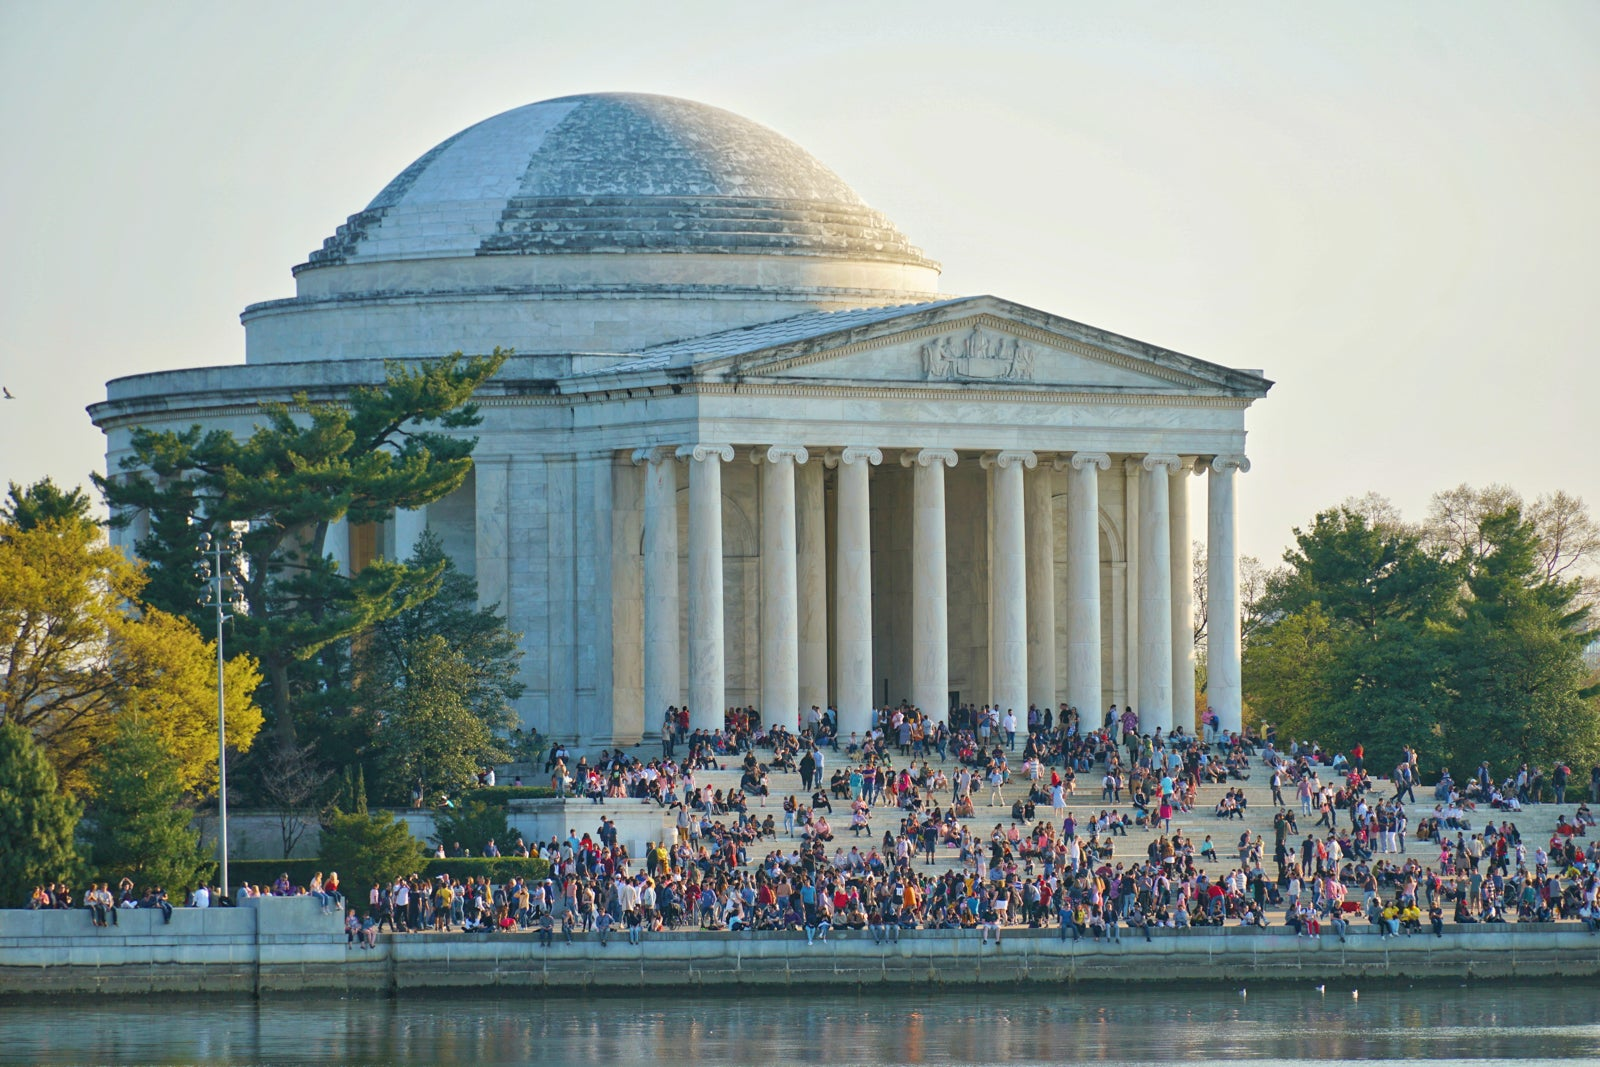 The Best Times to Visit Washington DC